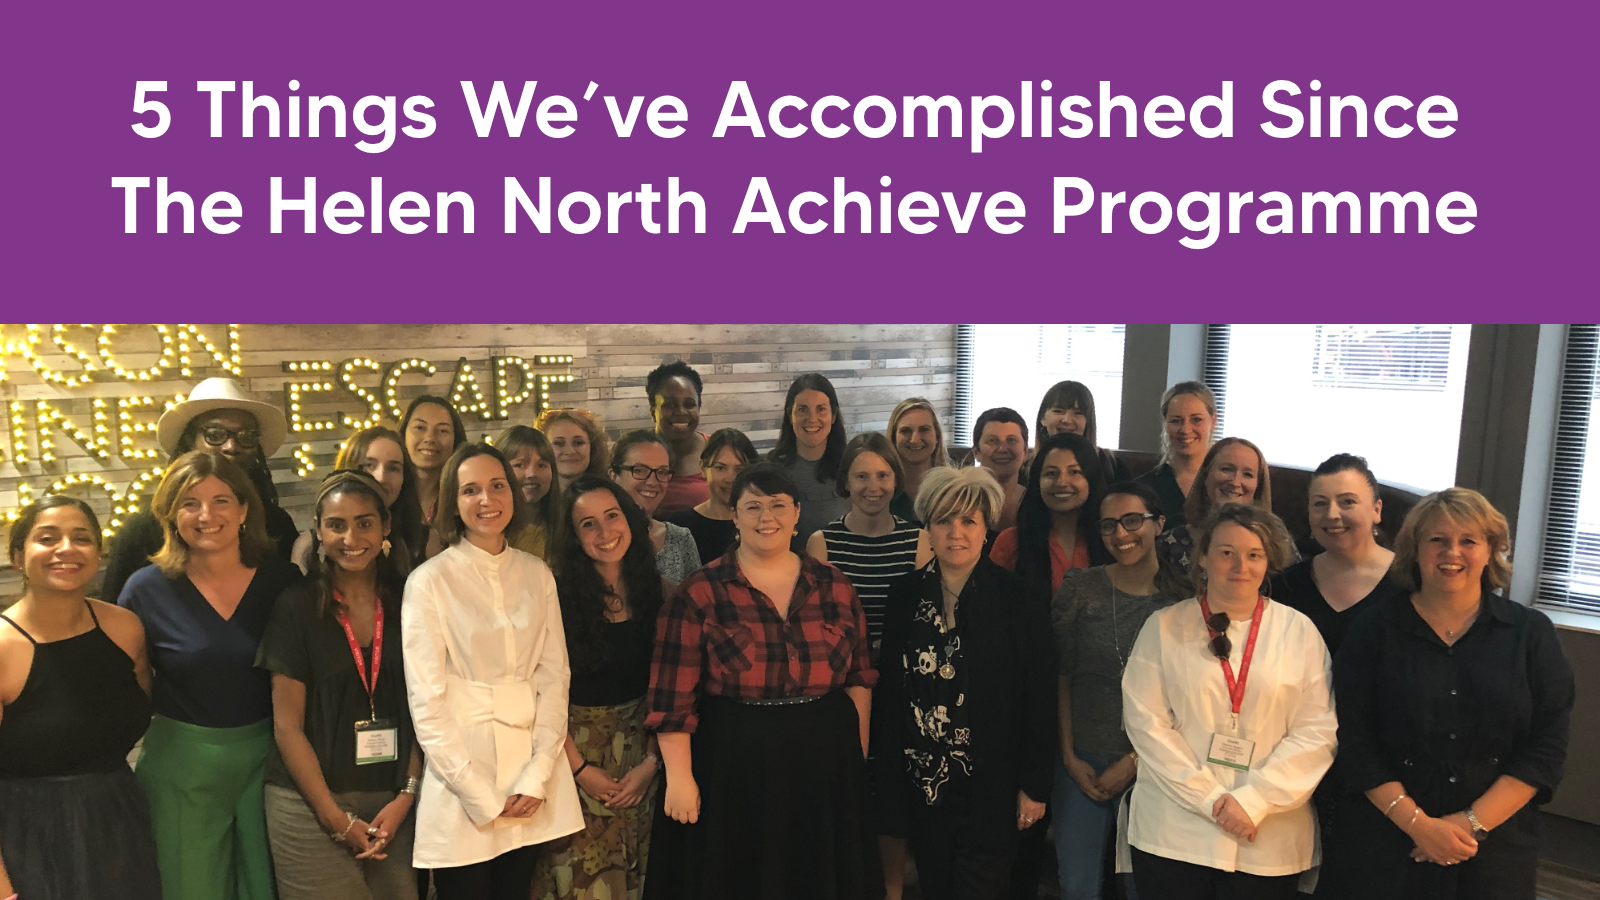 5 Things We've Accomplished Since Attending The Helen North Achieve Programme